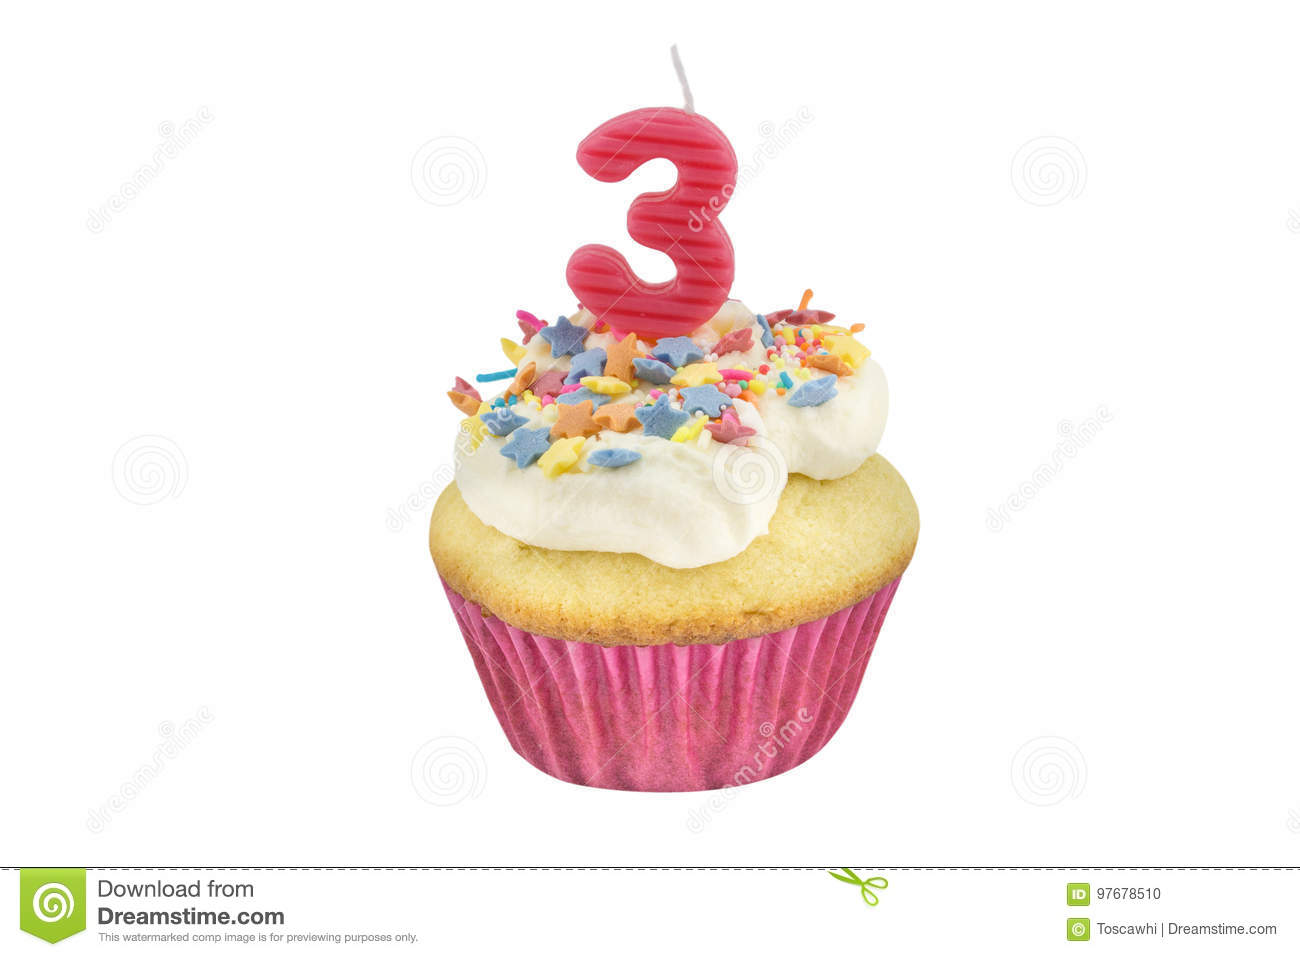 Happy Birthday Cup Cake With Star Sprinkles And Number 3 Pink Candle On White Table Background